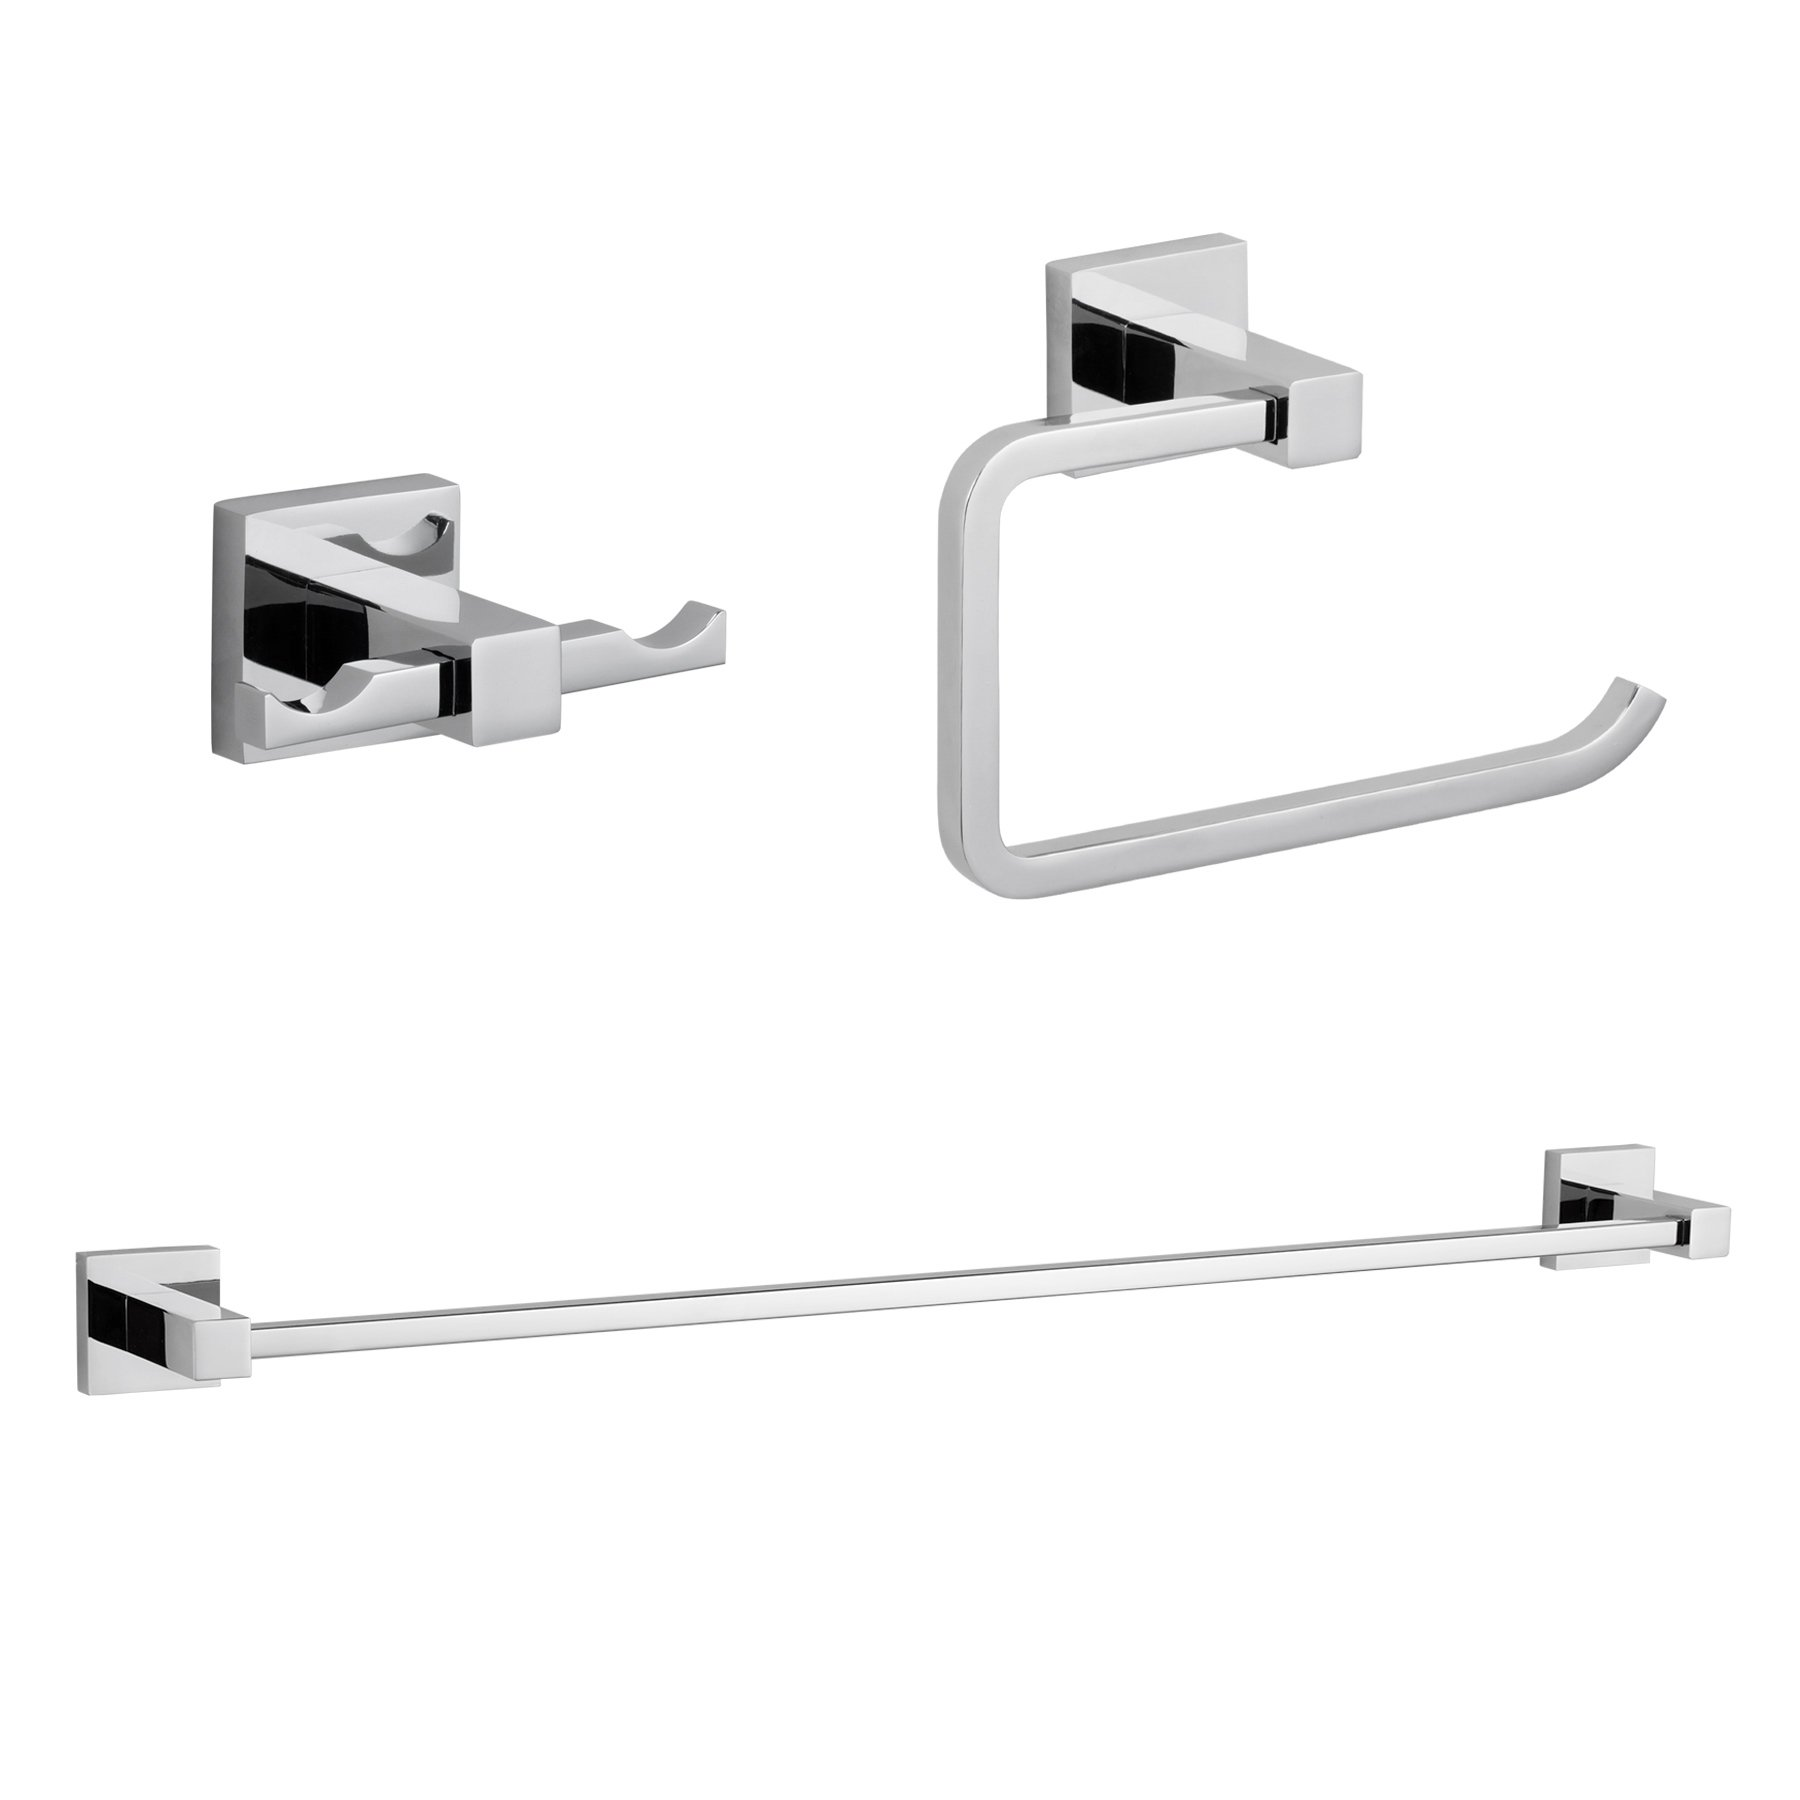 MAYKKE Zane 3-Piece Bathroom Hardware Essentials Accessory Set | 25'' Towel Bar, Double Robe Towel Hook, Toilet Paper Holder | For Bath, Shower, Kitchen | Polished Chrome, XYA1000891